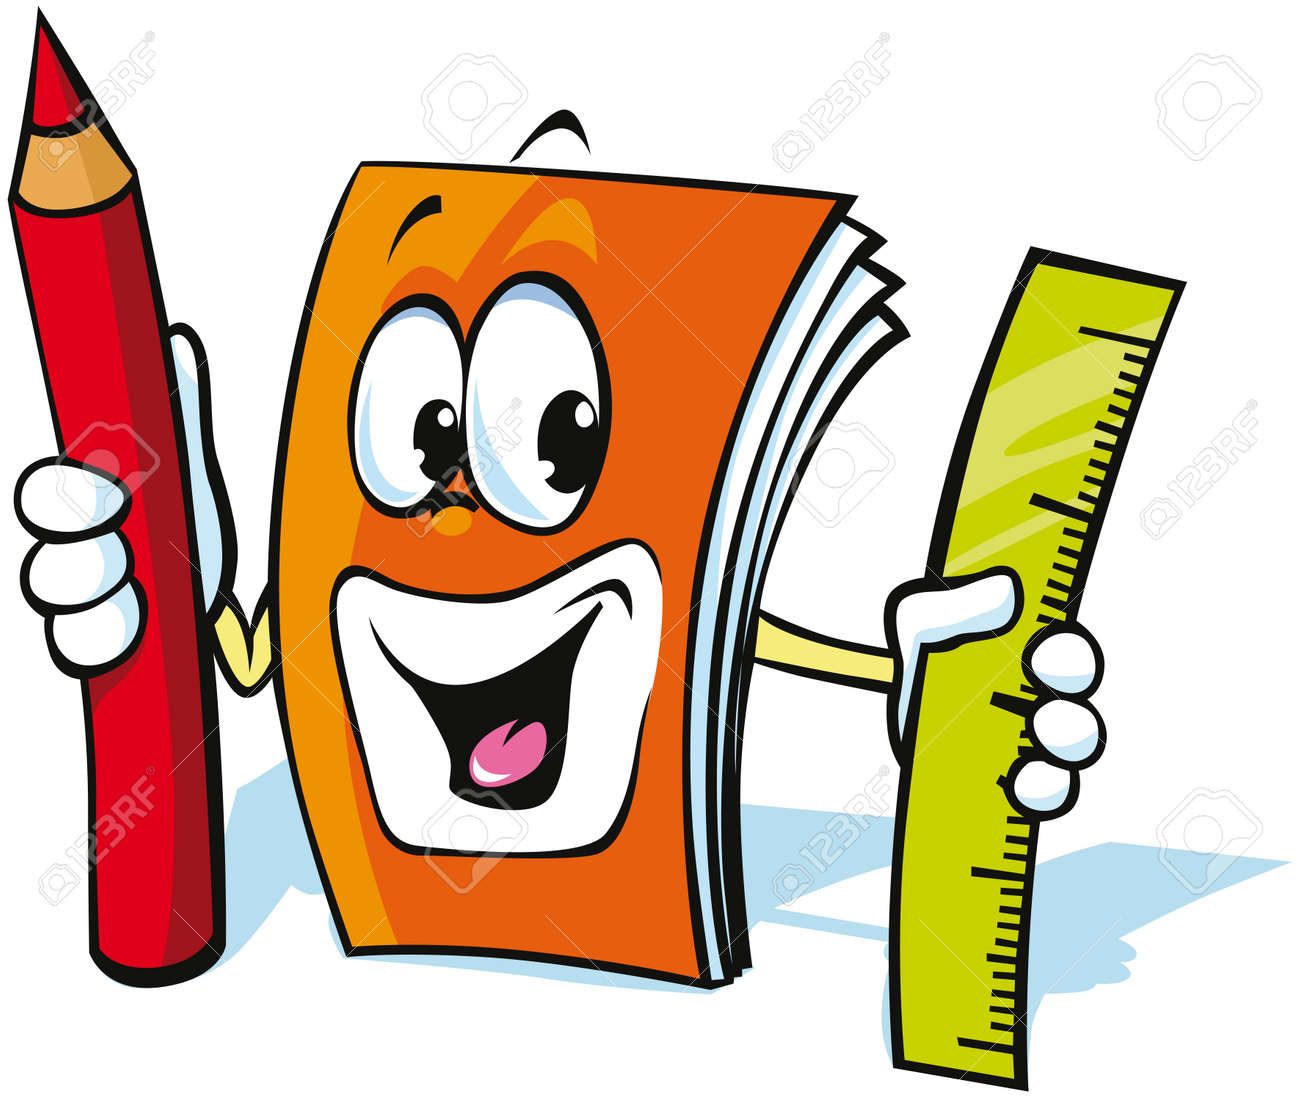 Funny Exercise Book Cartoon Royalty Free Cliparts Vectors And Stock Illustration Image 15171983